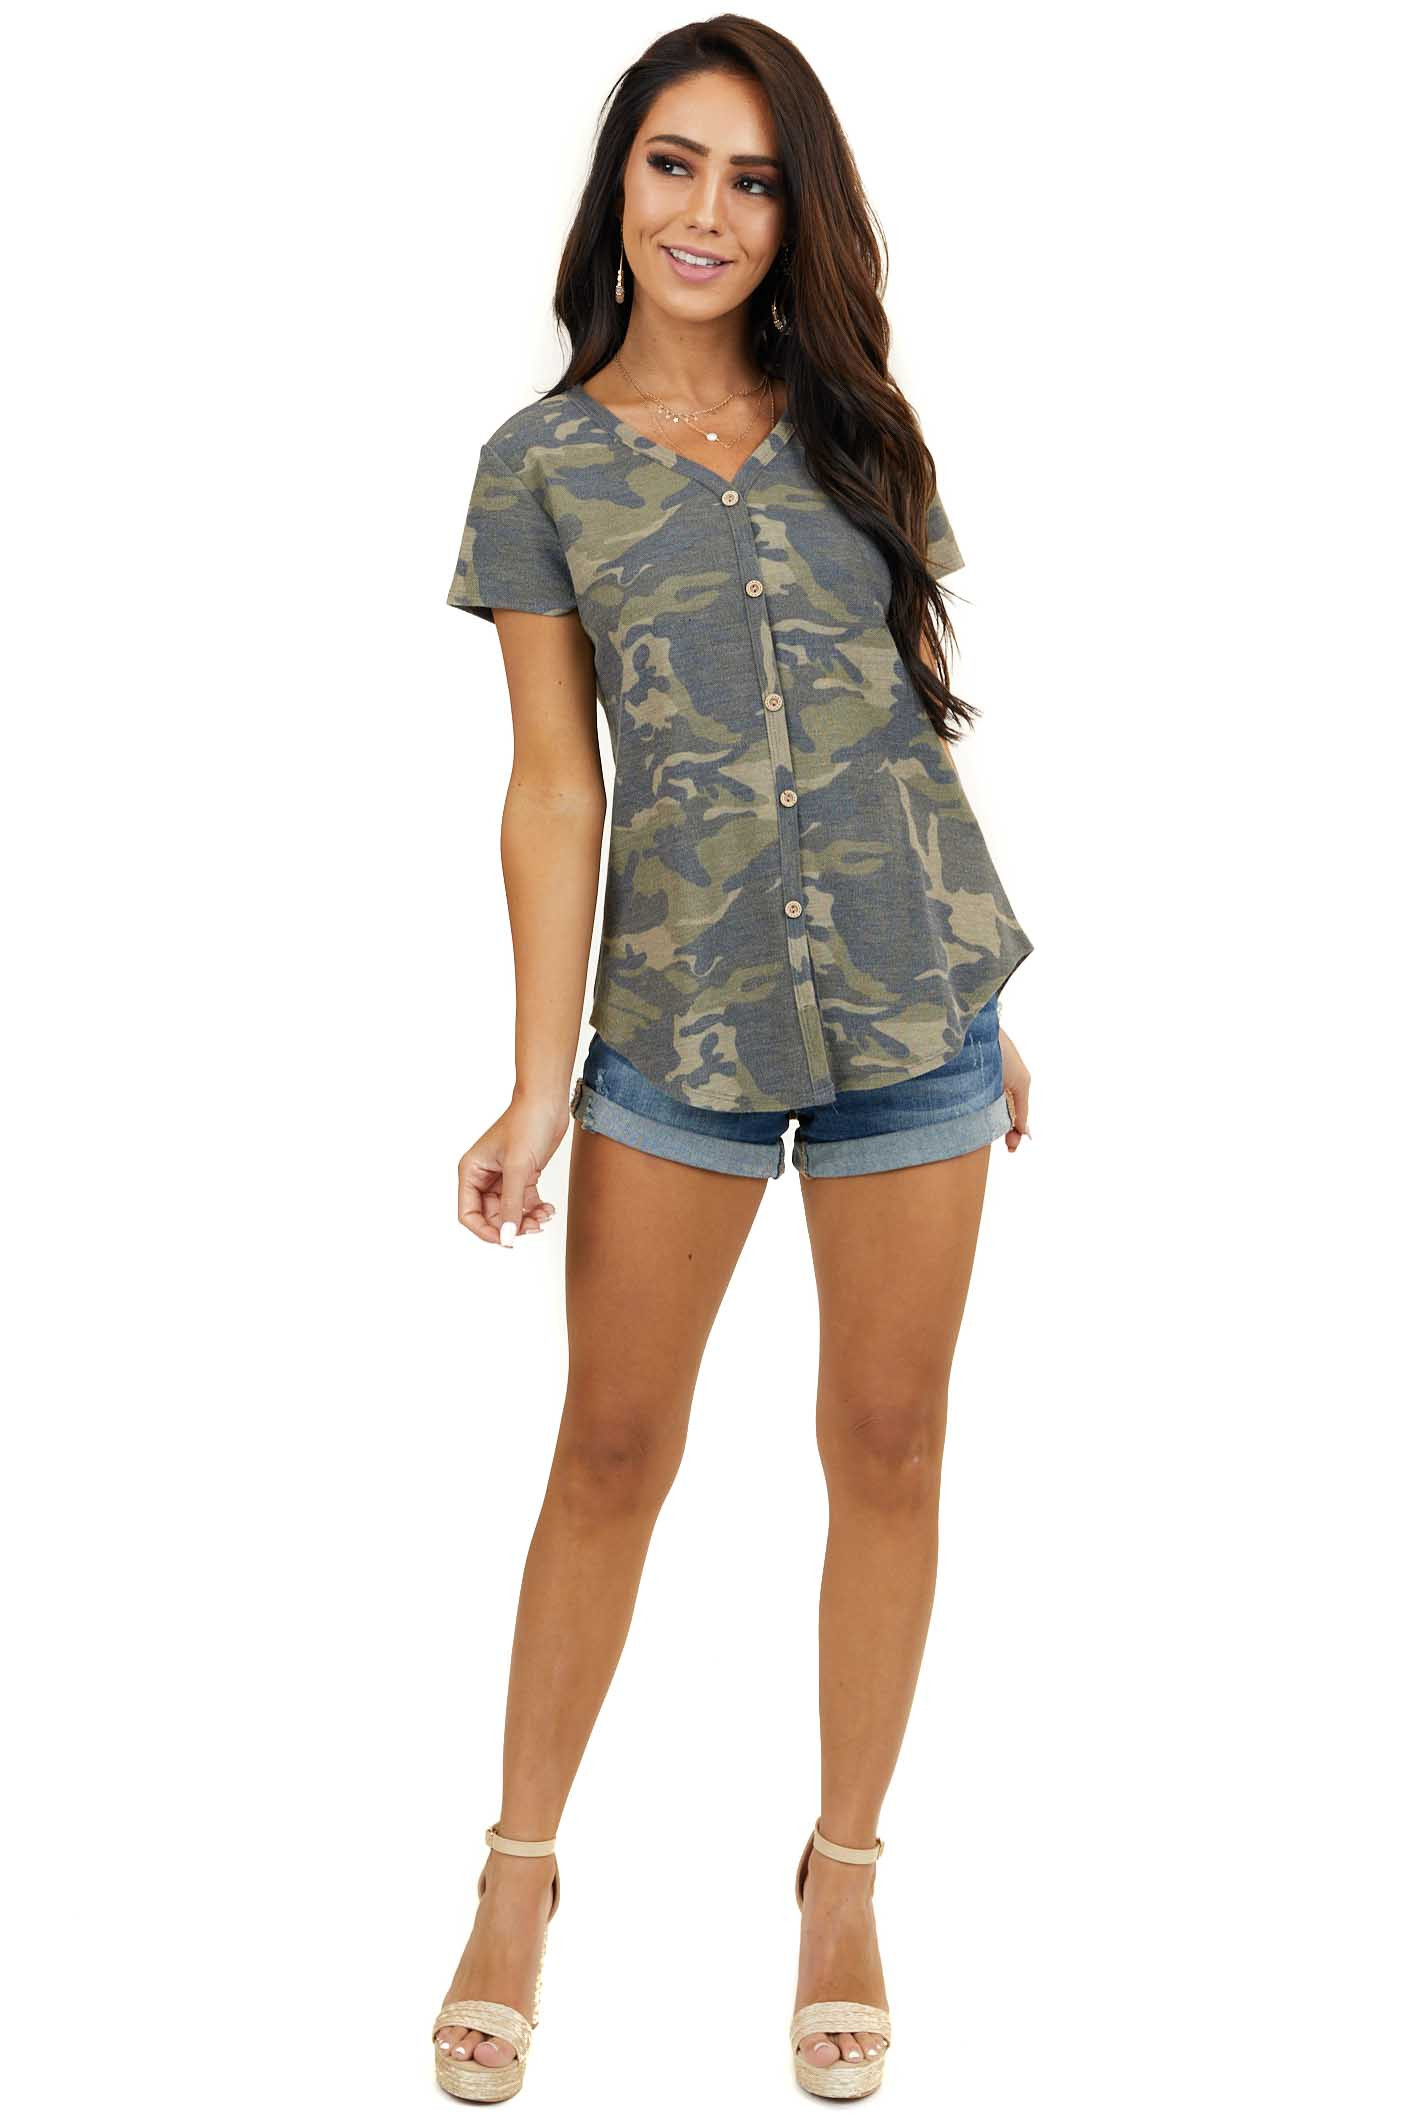 Olive Green Camo Print Short Sleeve Top with Button Up Front